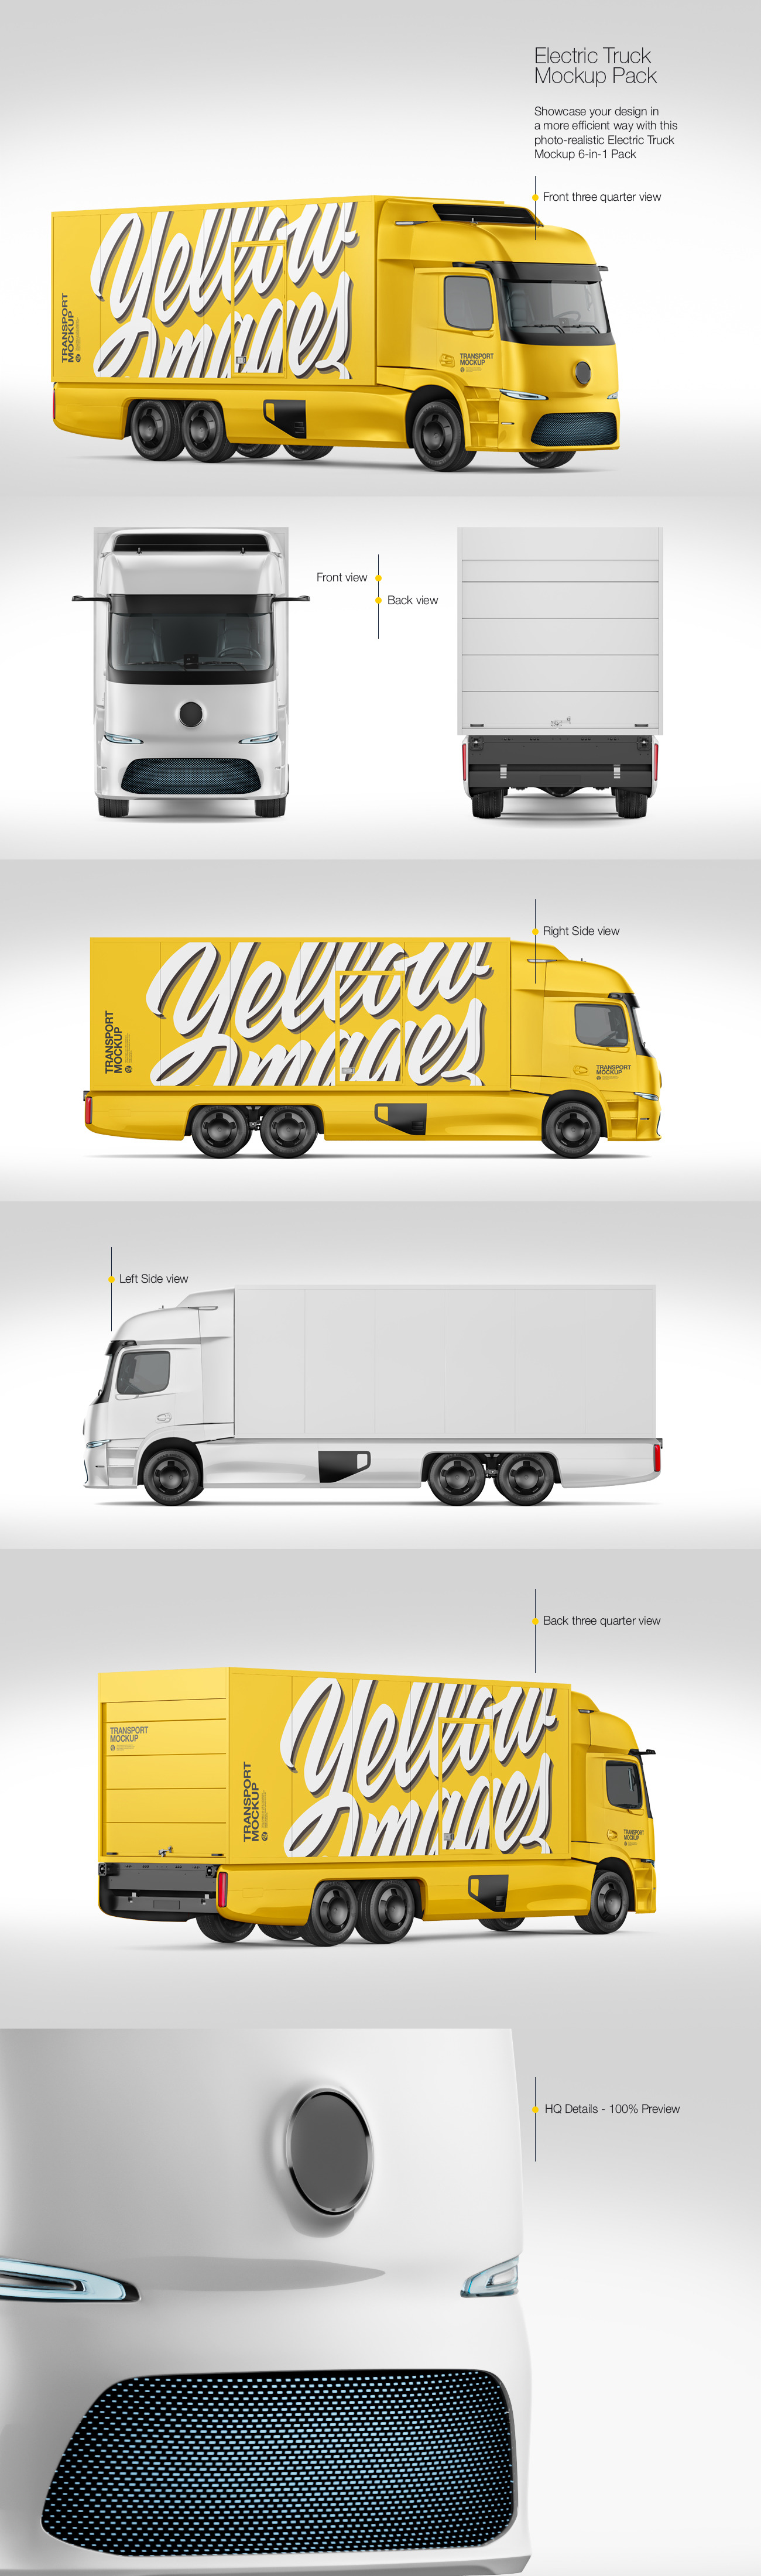 Electric Truck Mockup Pack